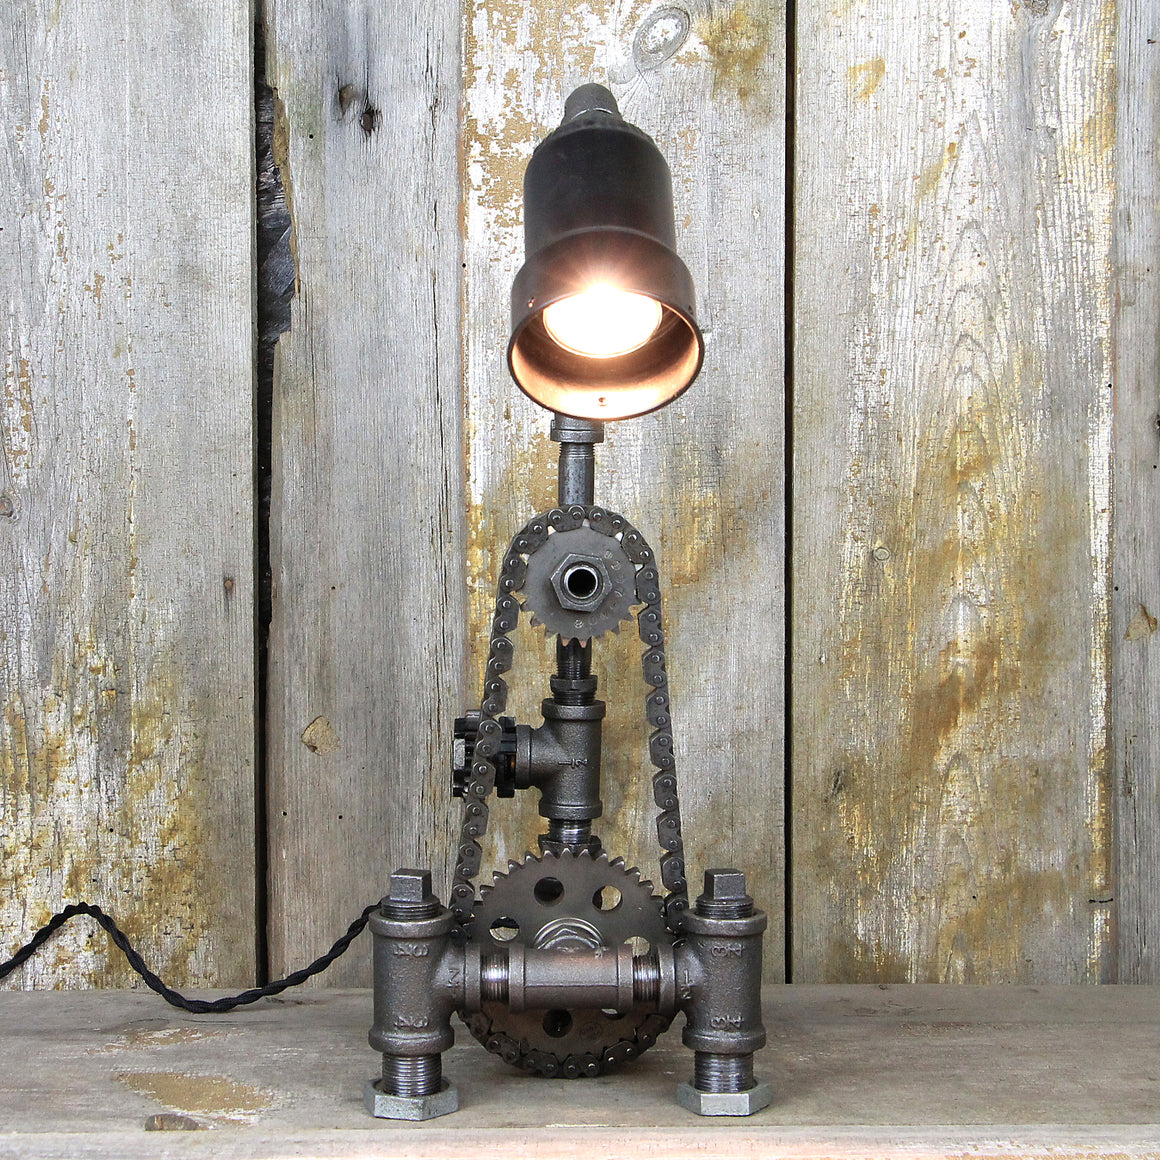 Industrial Table Lamp with Steampunk Gears & Chain - Industrial Lighting #89 - The Lighting Works